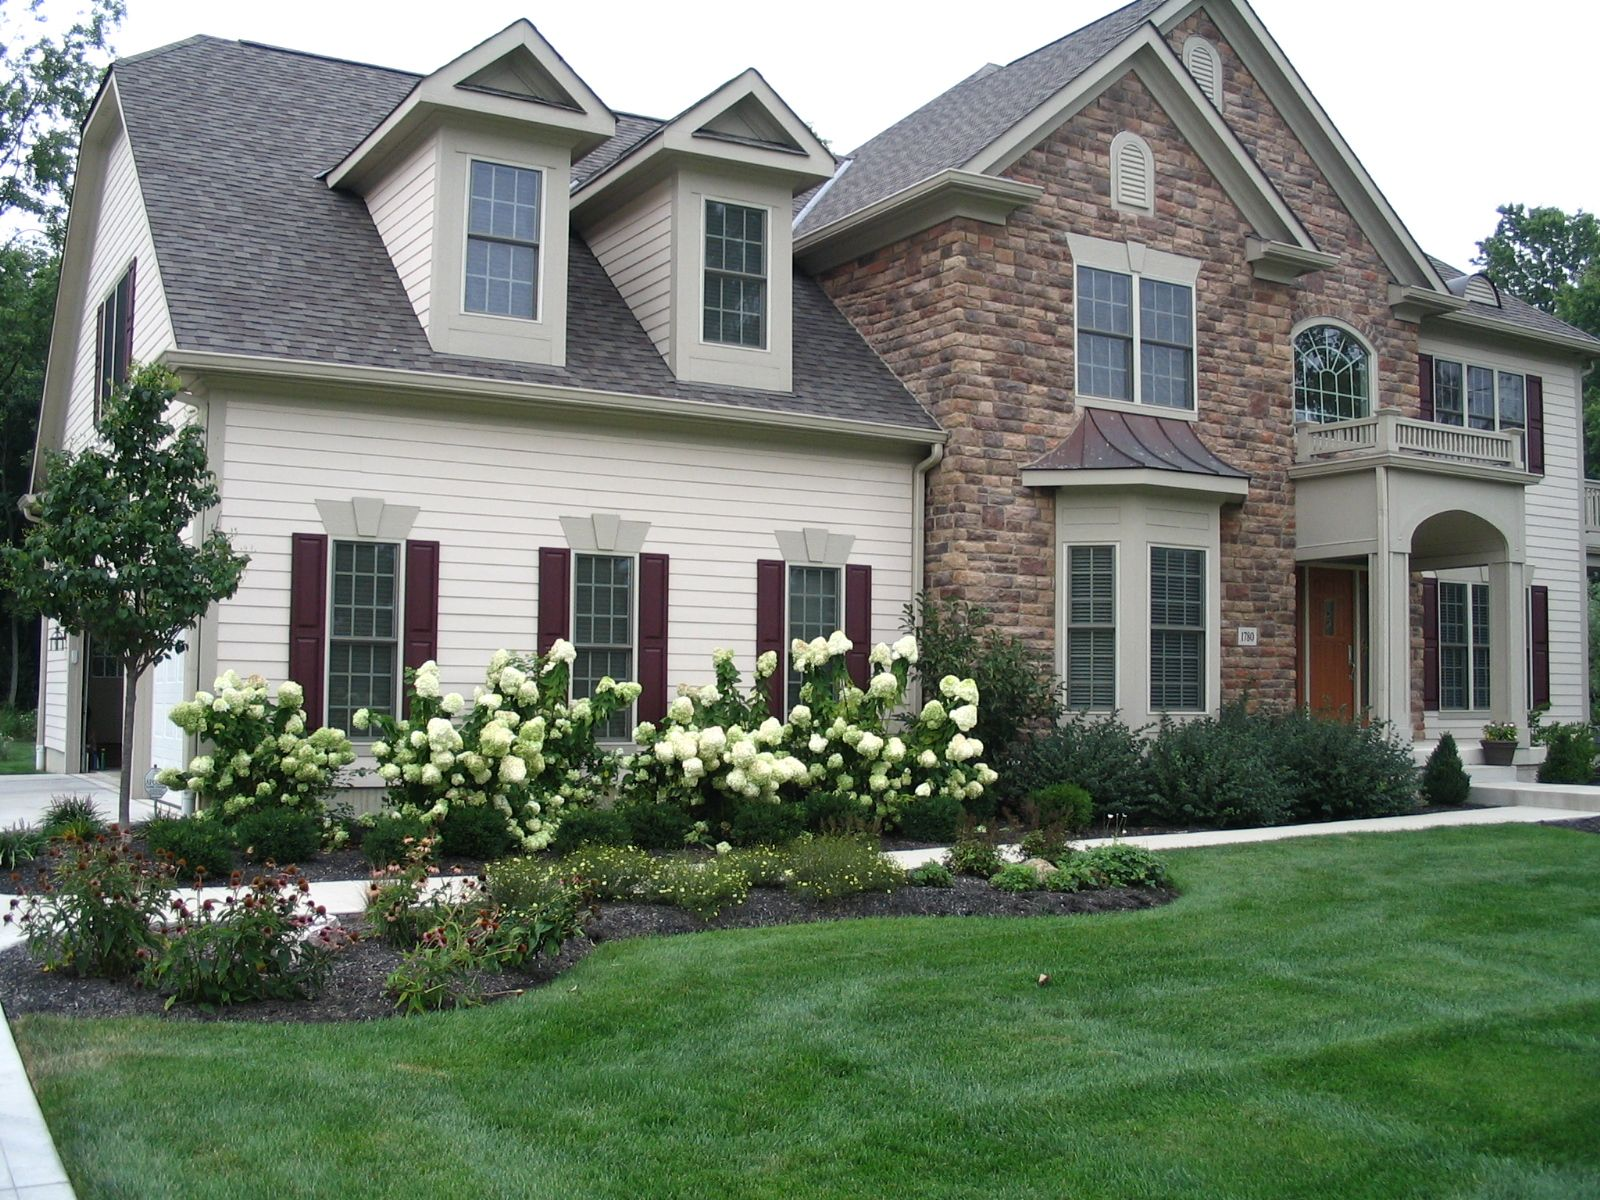 Best Foundation Planting Design Ideas 13 Low Maintenance Landscaping Front Yard Traditional Landscape Front Yard Landscaping